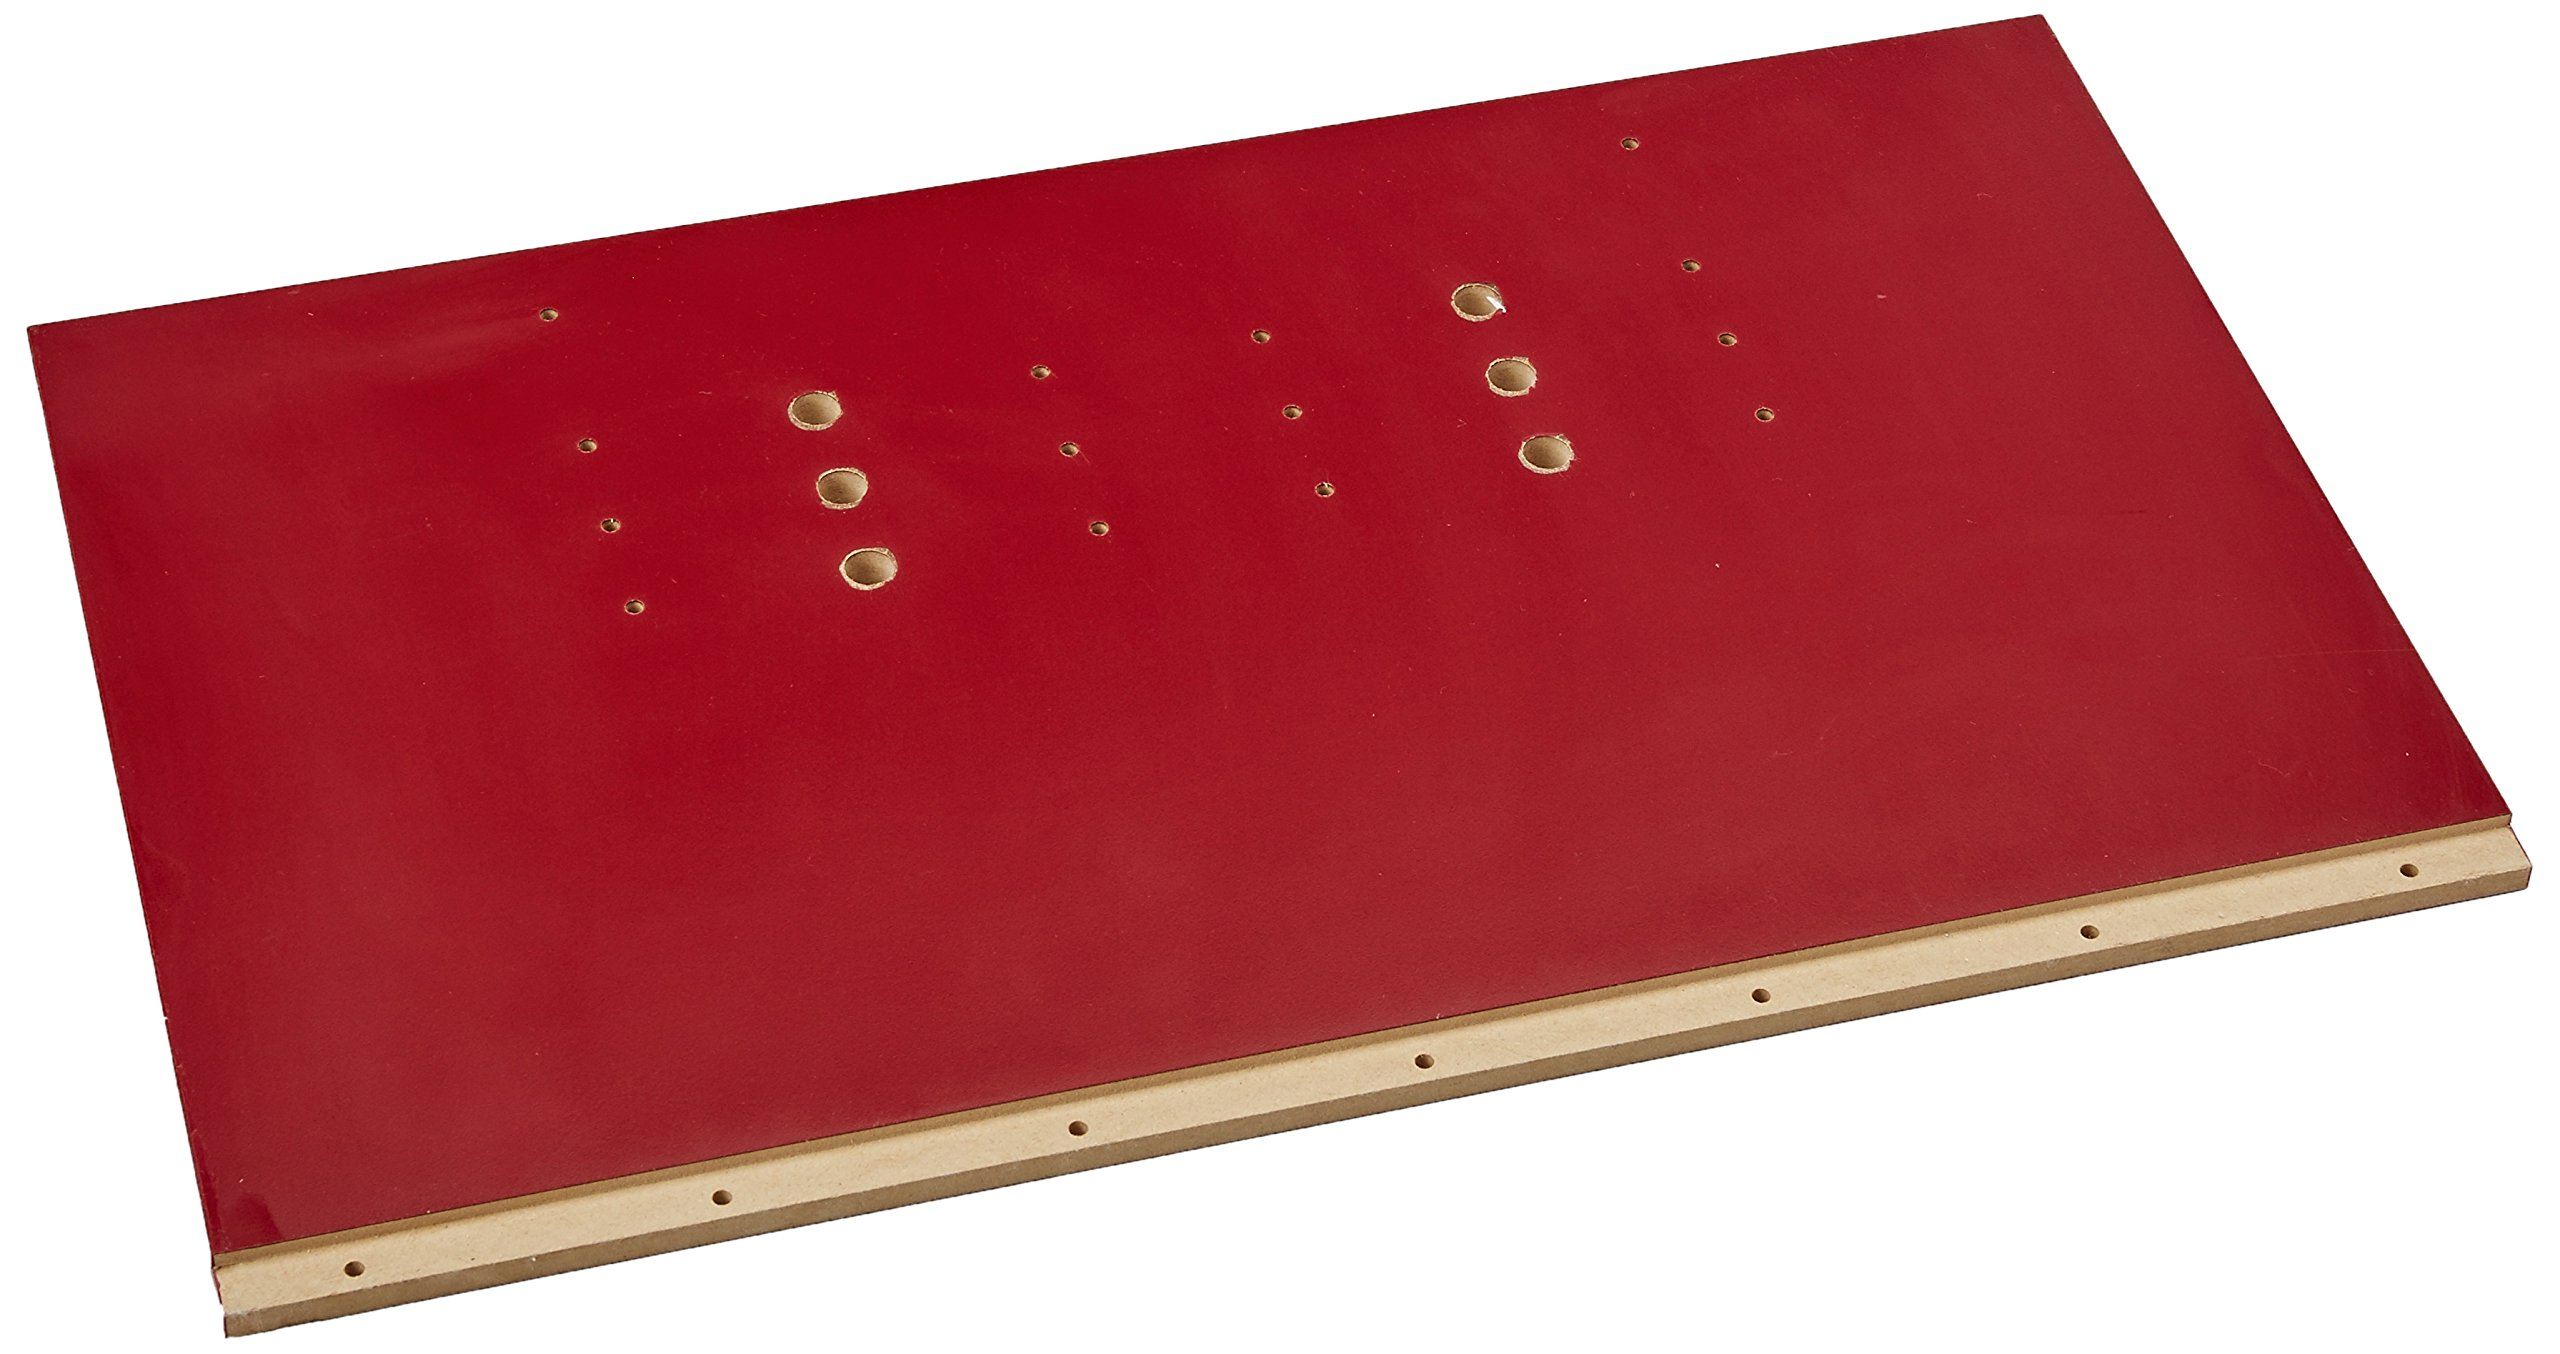 INCRA M5000RRPANEL Miter 5000 Replacement Panel by INCRA